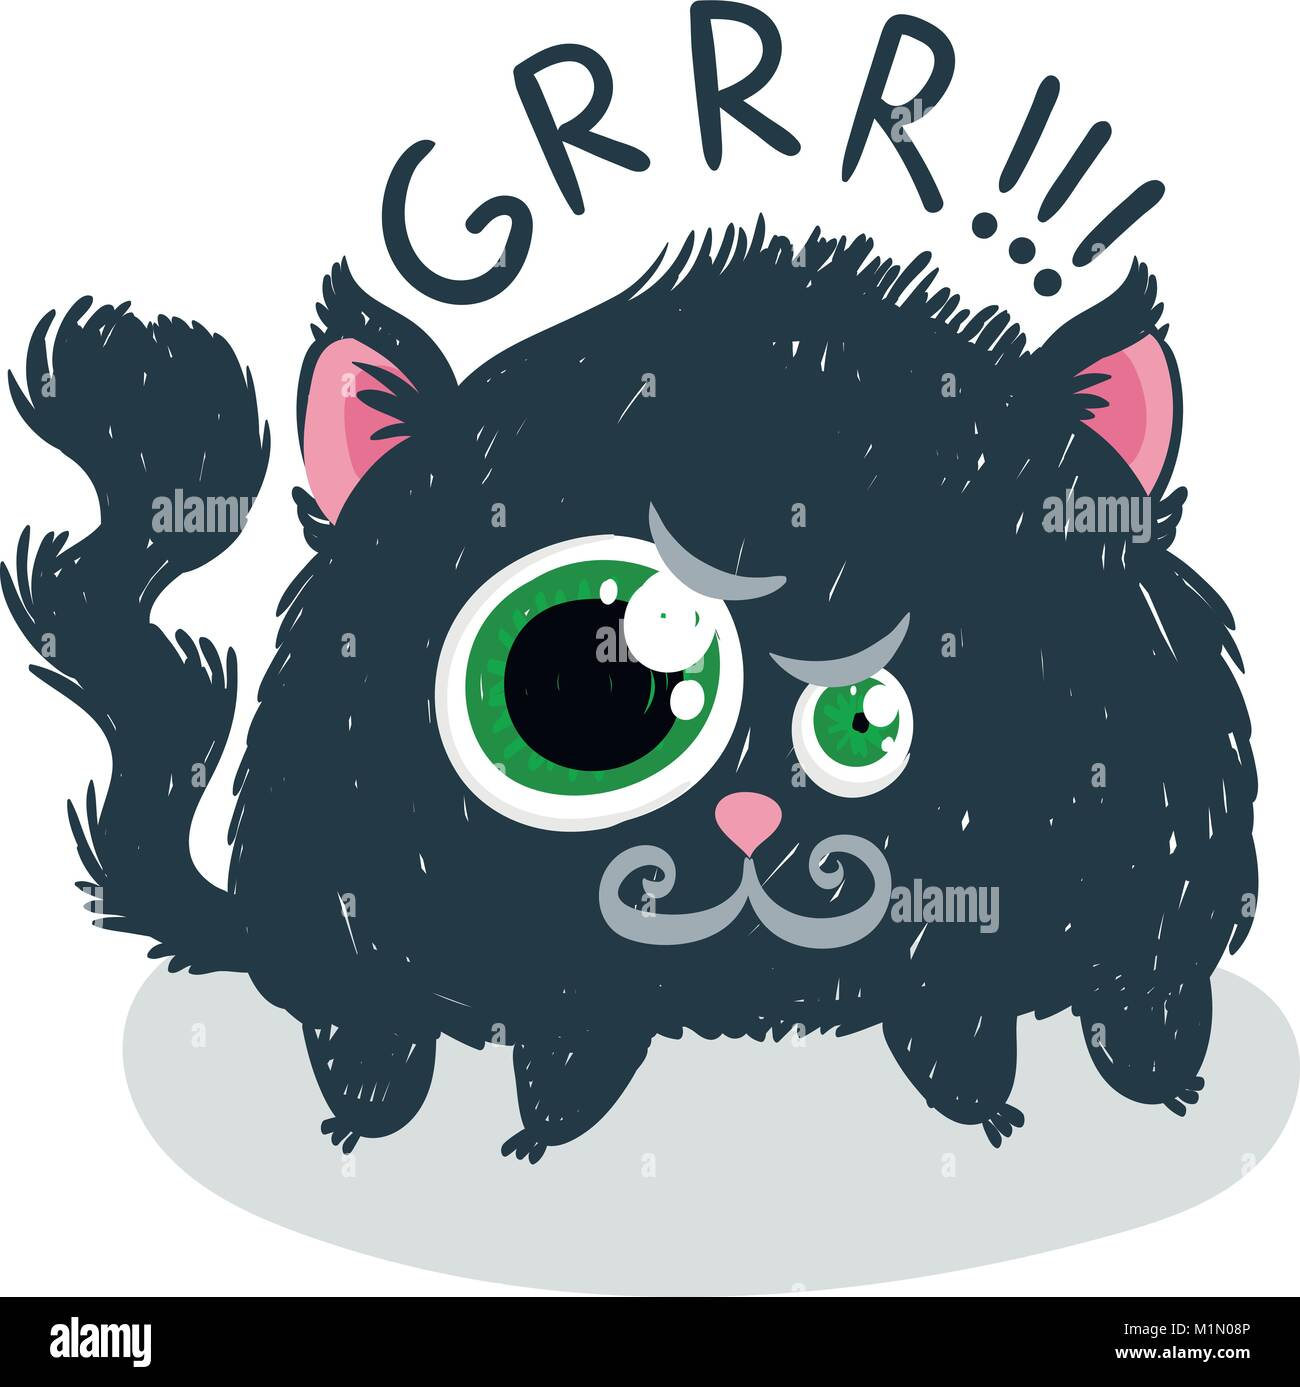 Cute monster kitten with text. Vector illustration for t shirt and print design. Poster, card, label. Grr! Stock Vector